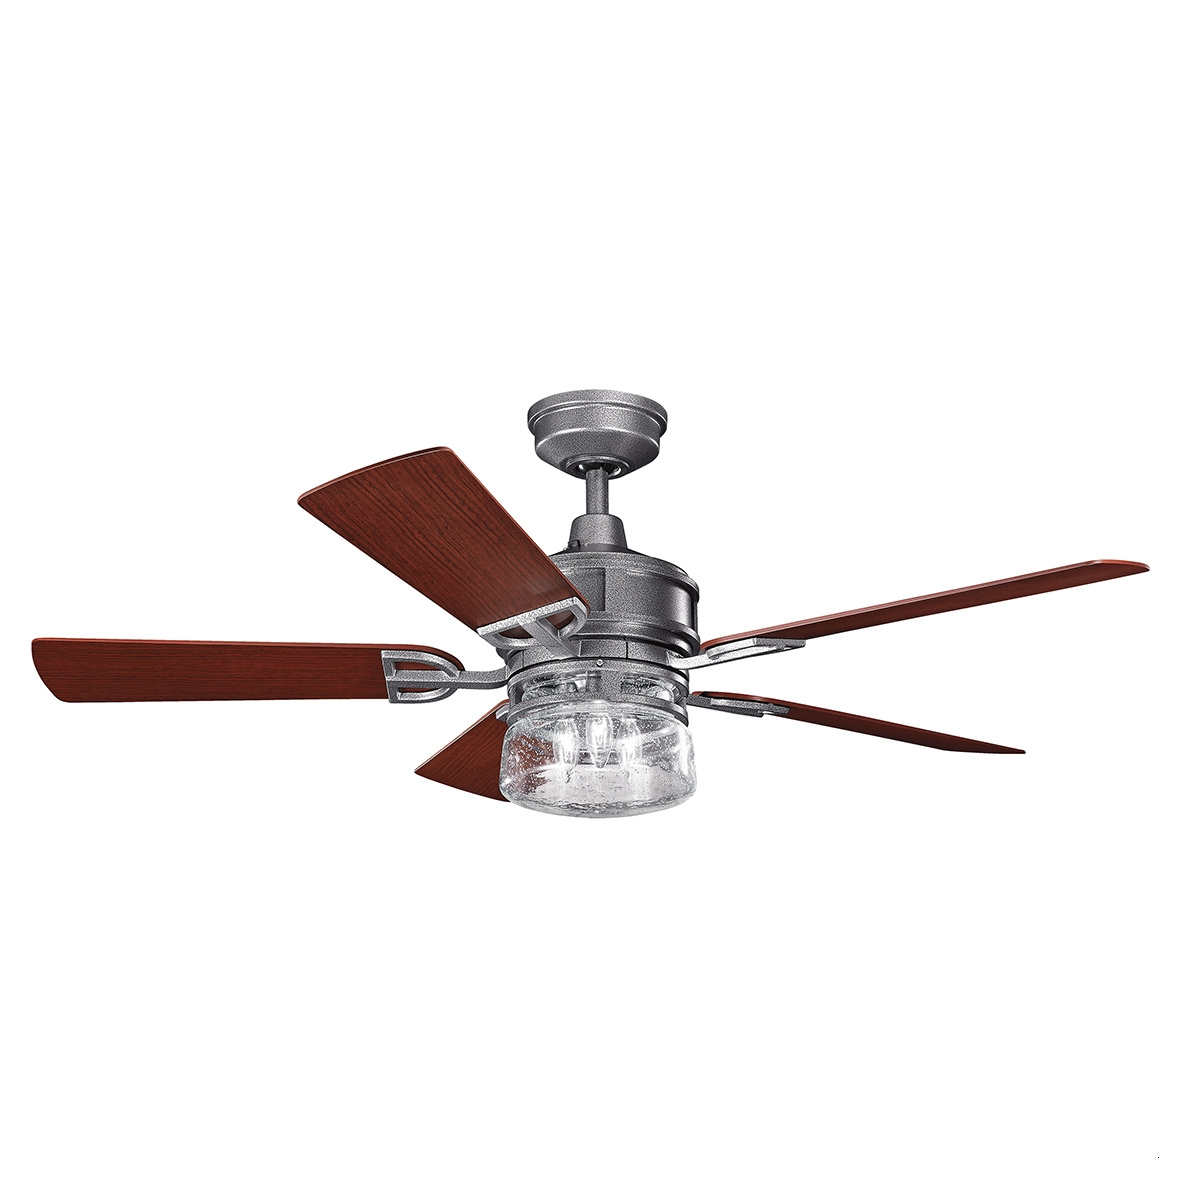 "Most Popular Outdoor Ceiling Fans With Lights Wet Rated Attractive 52"" Lyndon Throughout Wet Rated Outdoor Ceiling Fans With Light (View 12 of 20)"